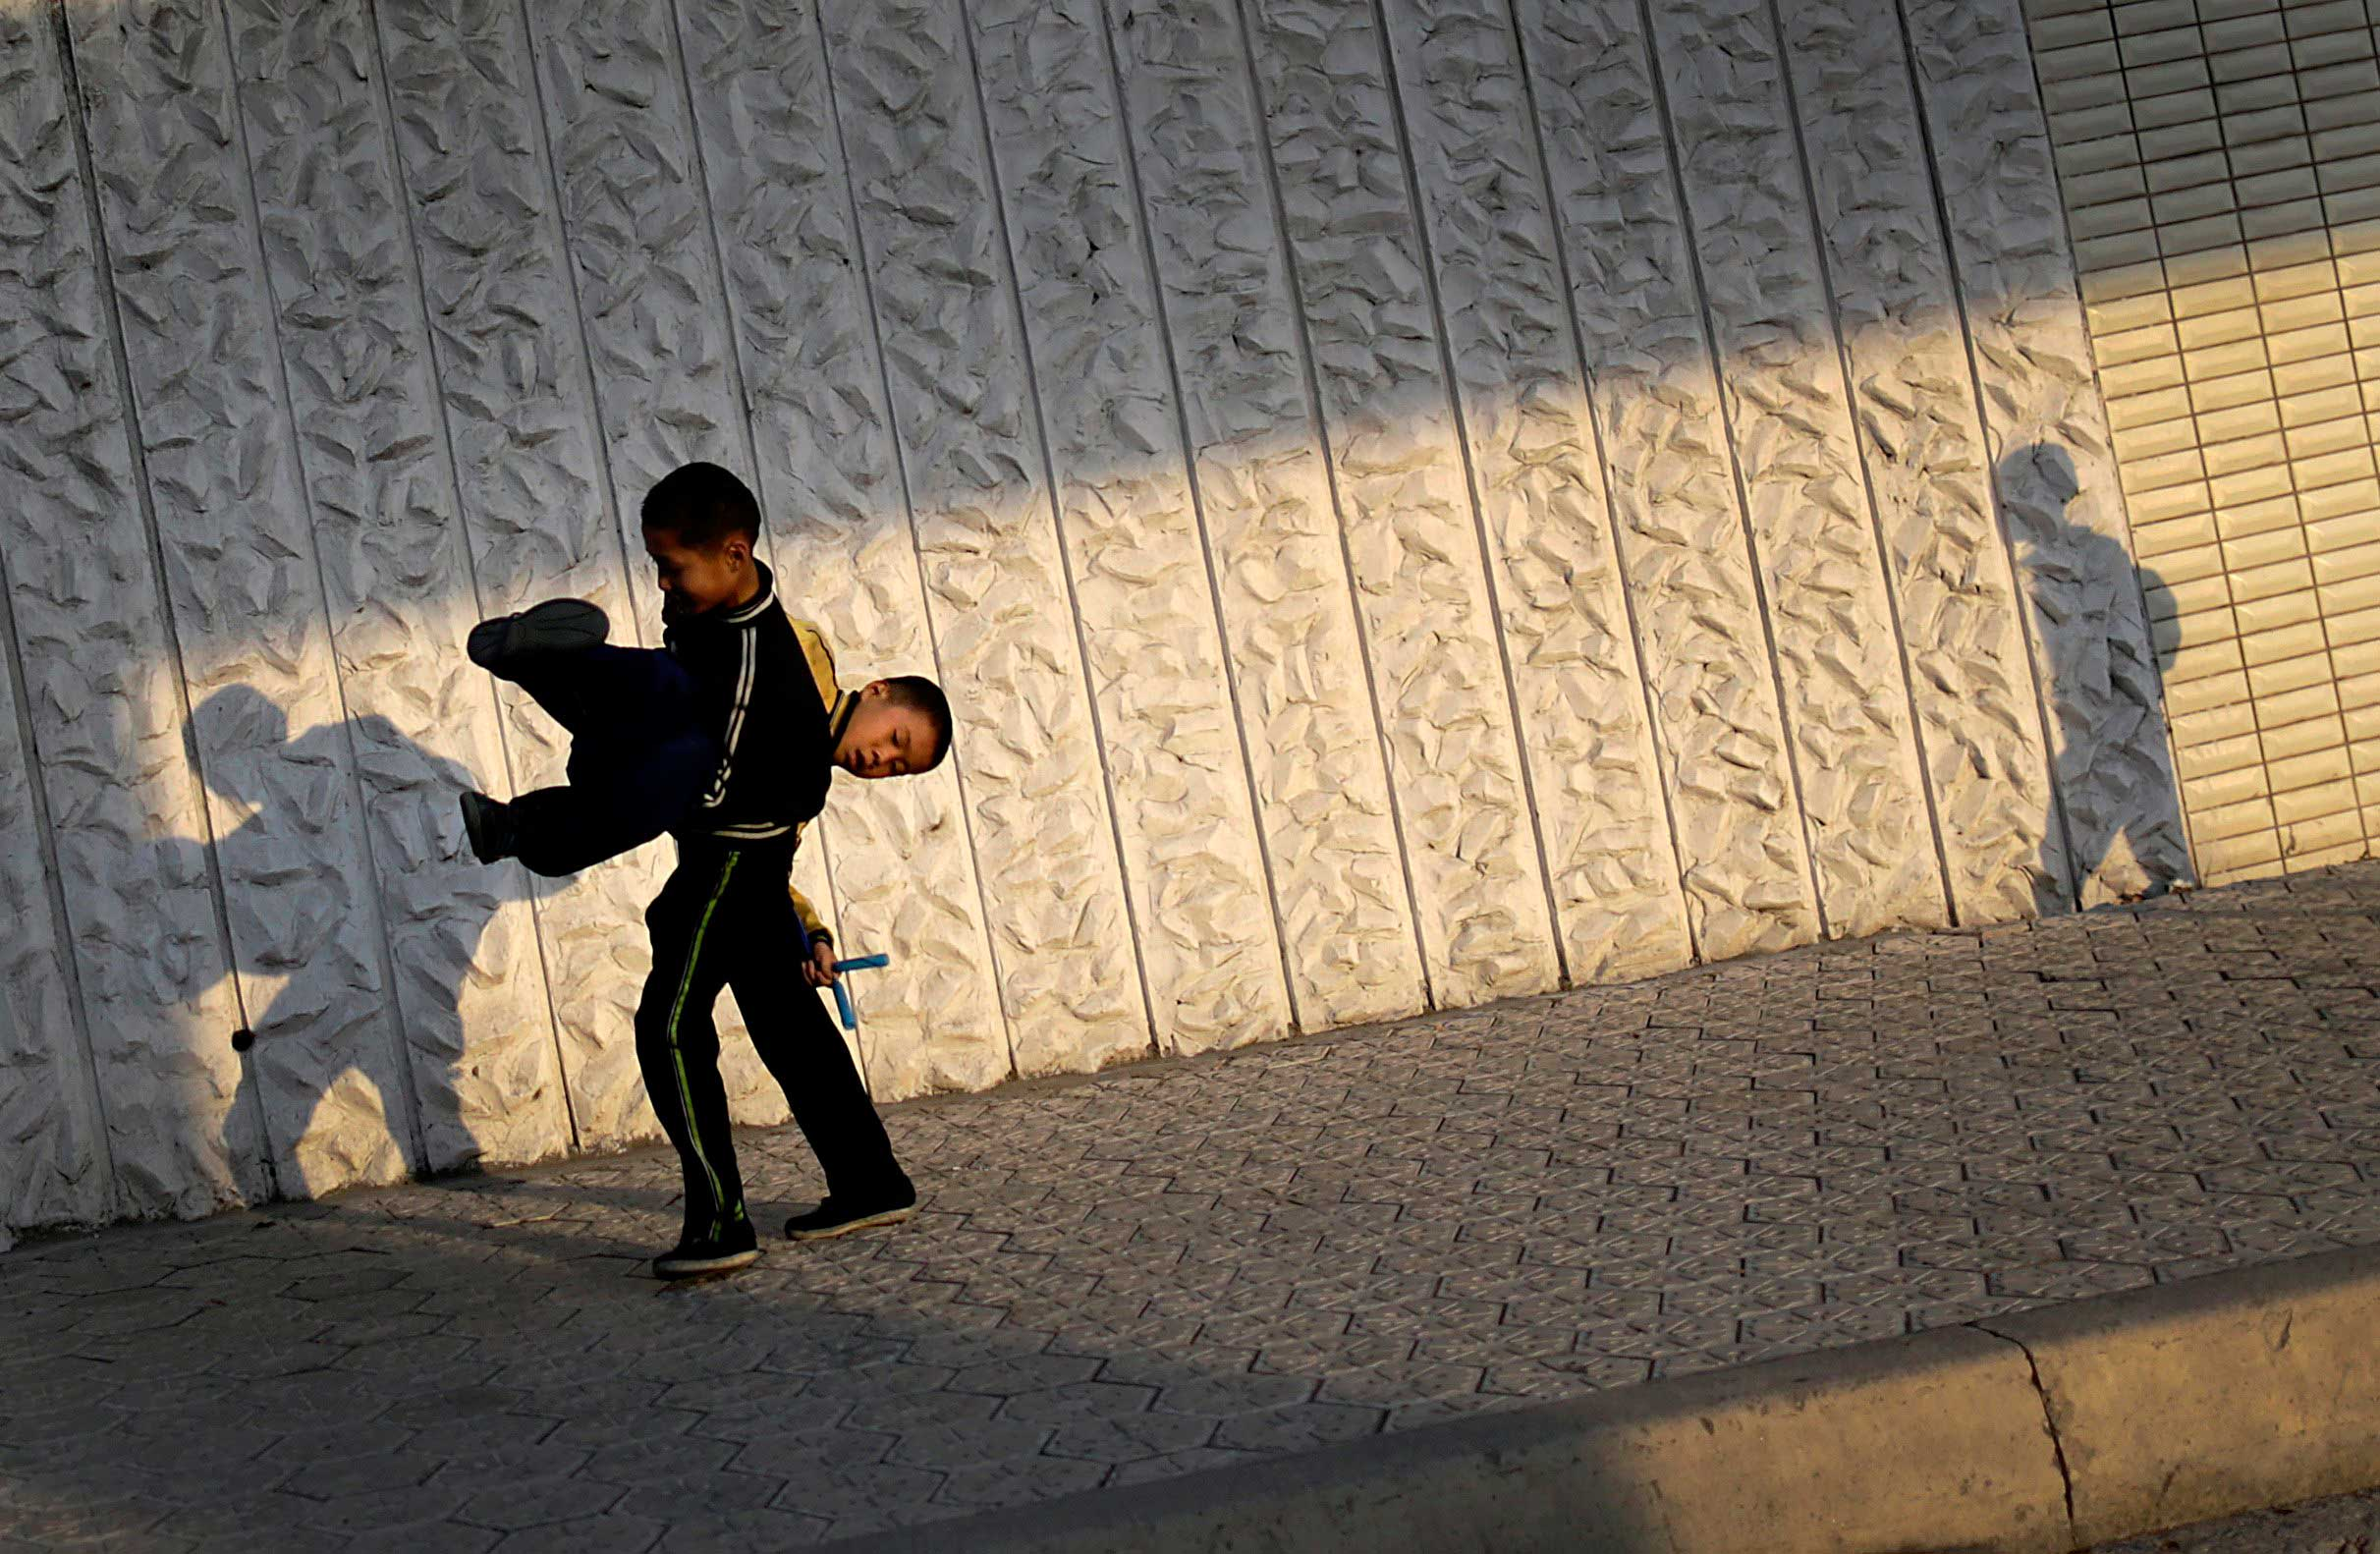 Oct. 22, 2014. The evening sun casts shadows of North Korean boys on an apartment building facade as they make their way down a street in Pyongyang, North Korea.